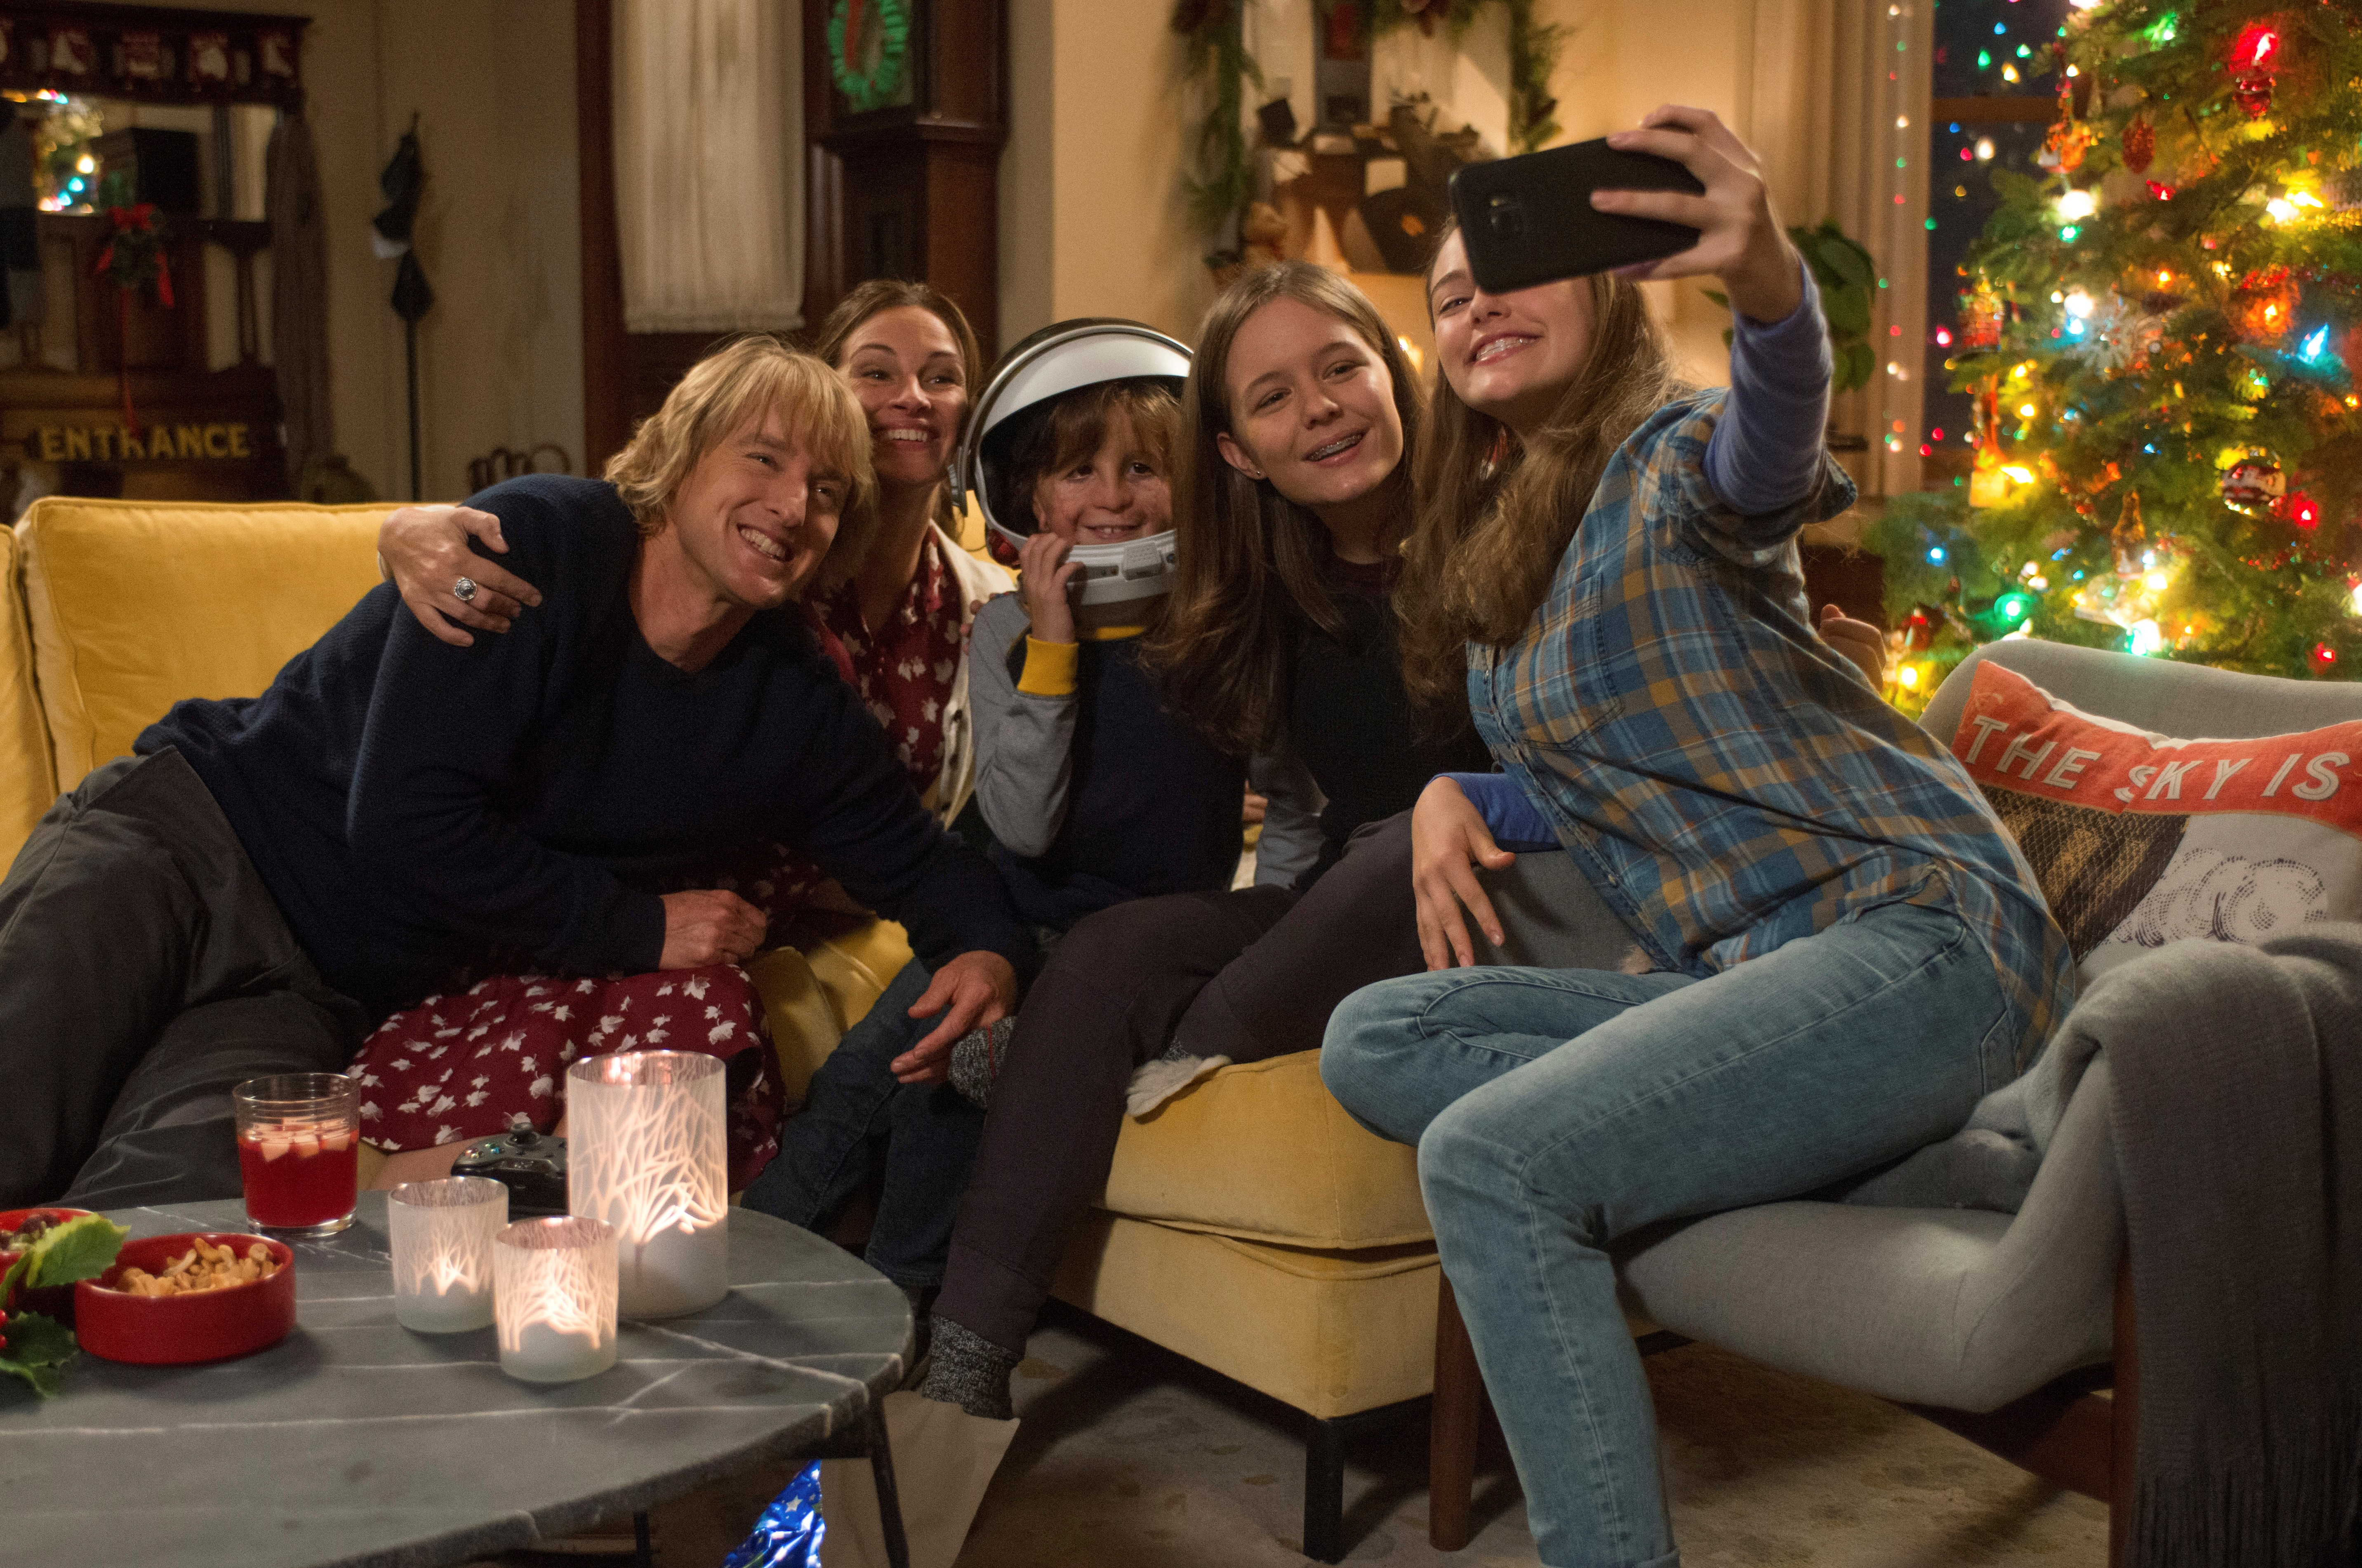 """""""Wonder's"""" Pullman family plus friend Miranda. From L to R: Owen Wilson as 'Nate,' Julia Roberts as 'Isabel,' Jacob Tremblay as 'Auggie,' Izabela Vidovic as 'Via' and Danielle Rose Russell as 'Miranda.'"""